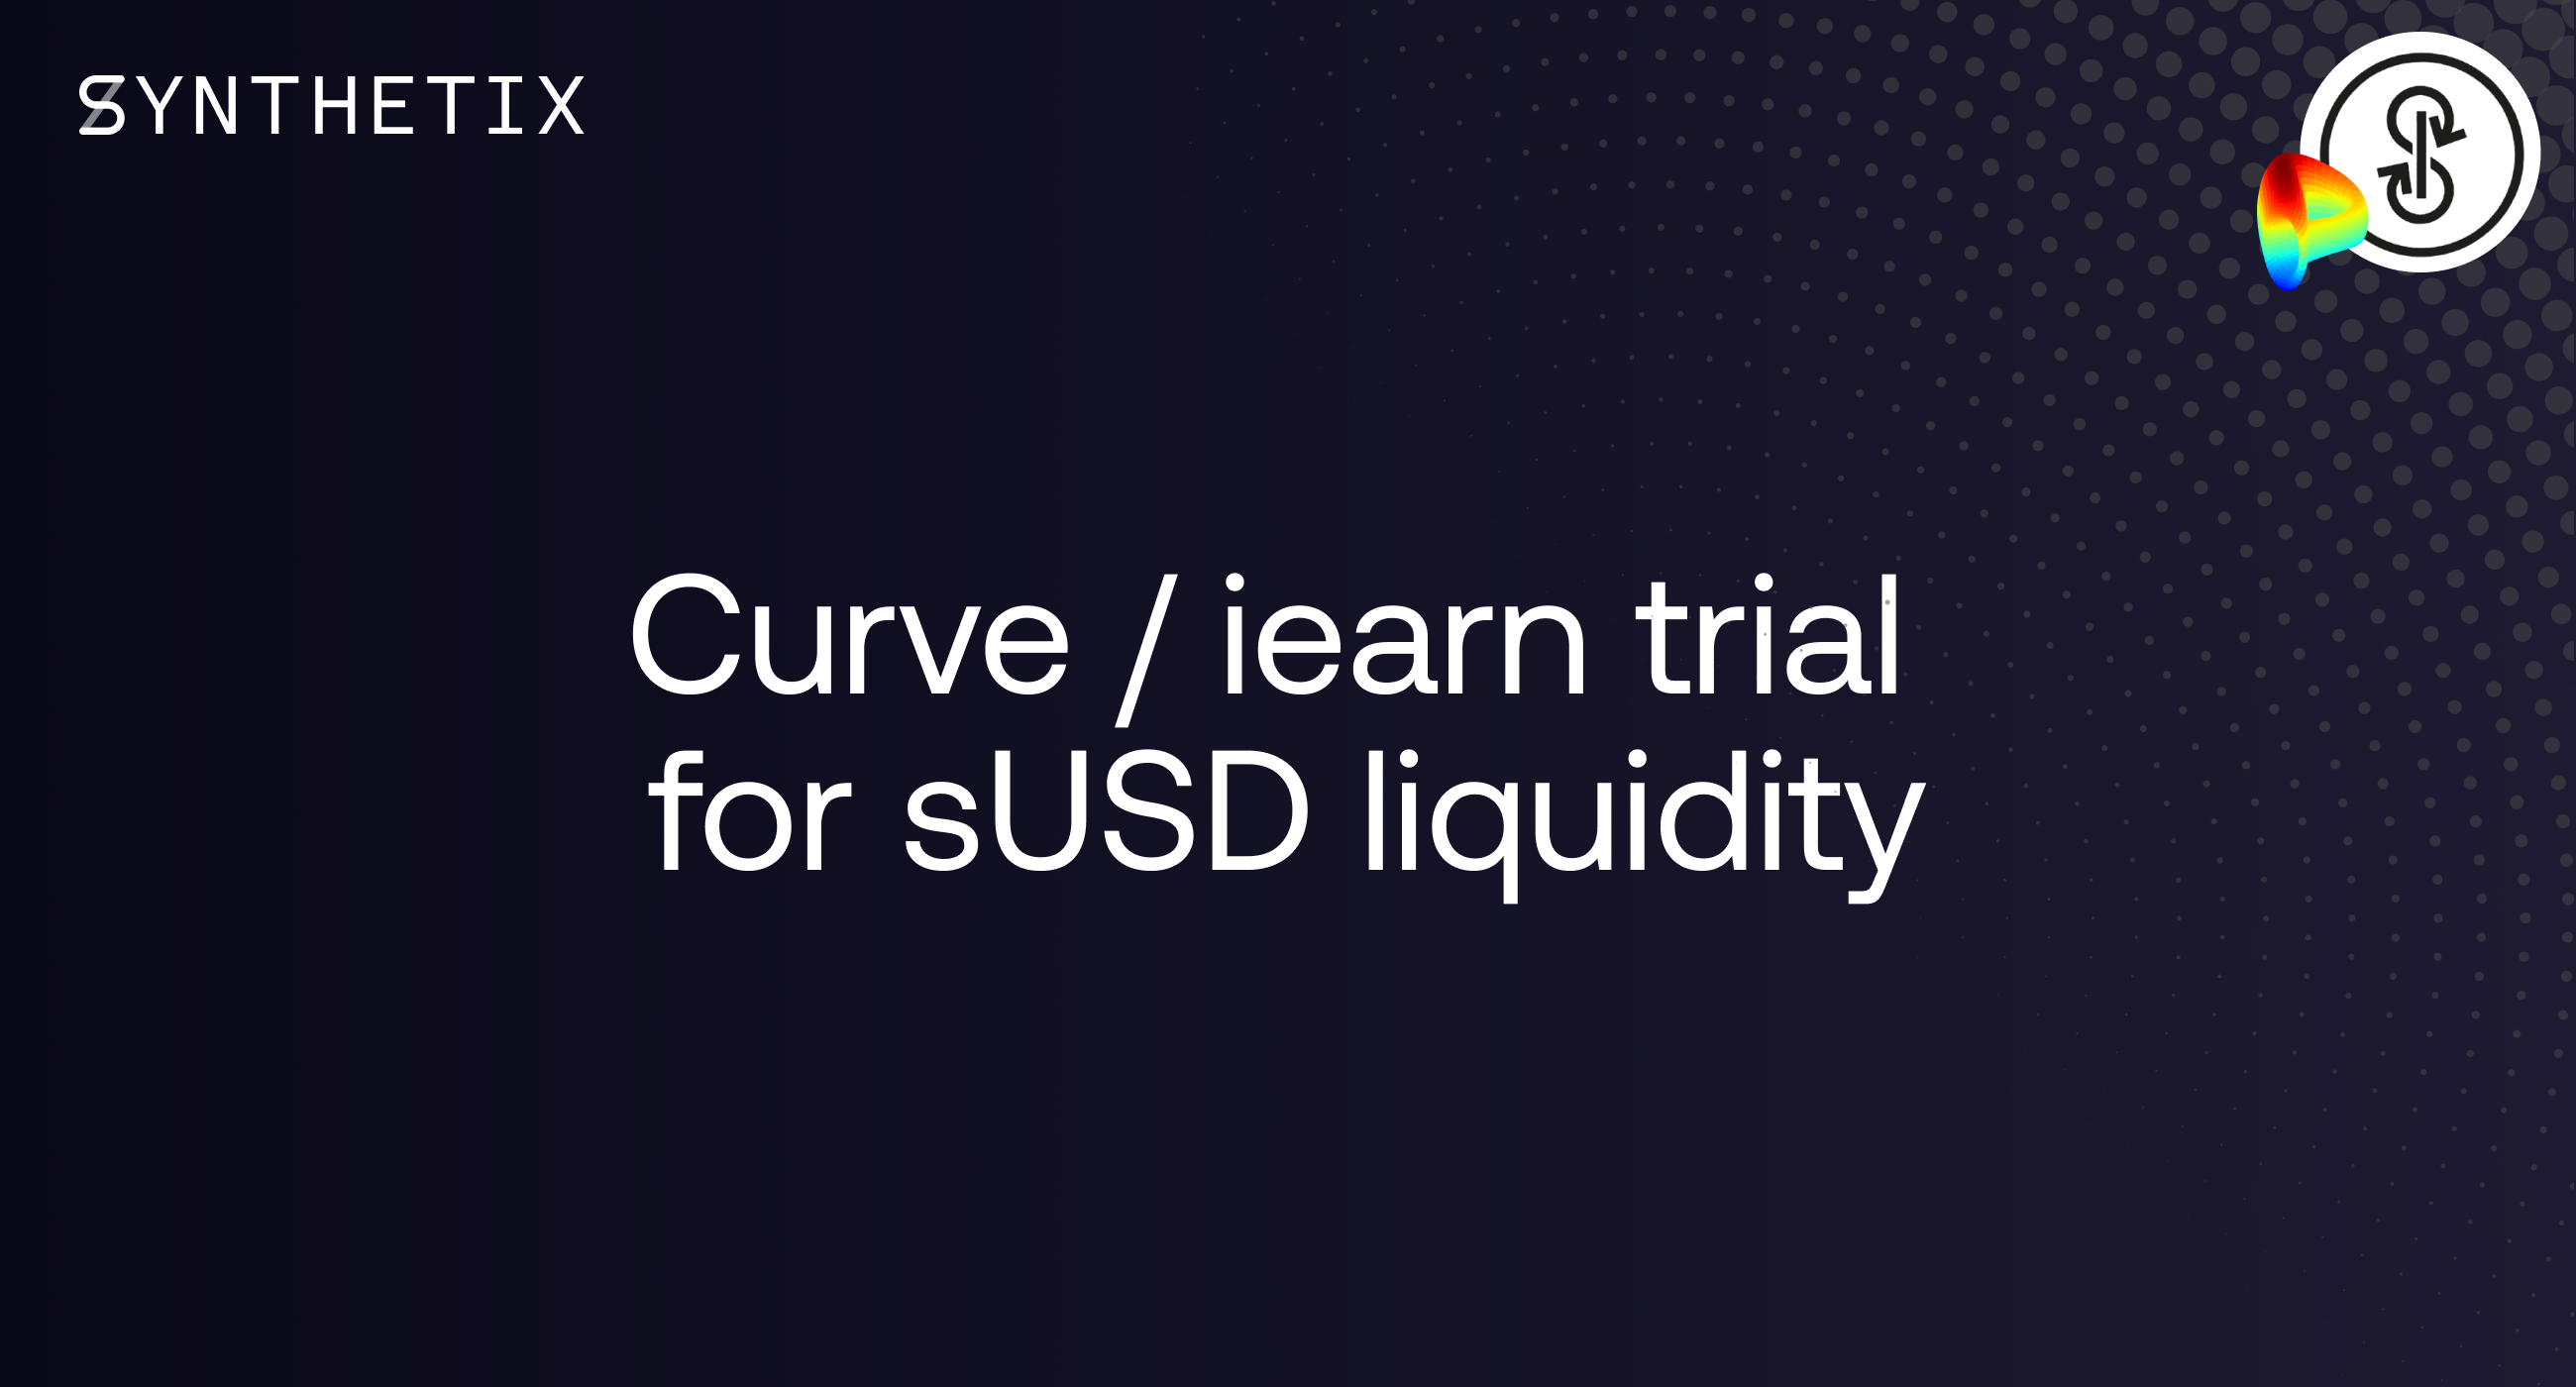 sUSD liquidity trial with Curve/iearn